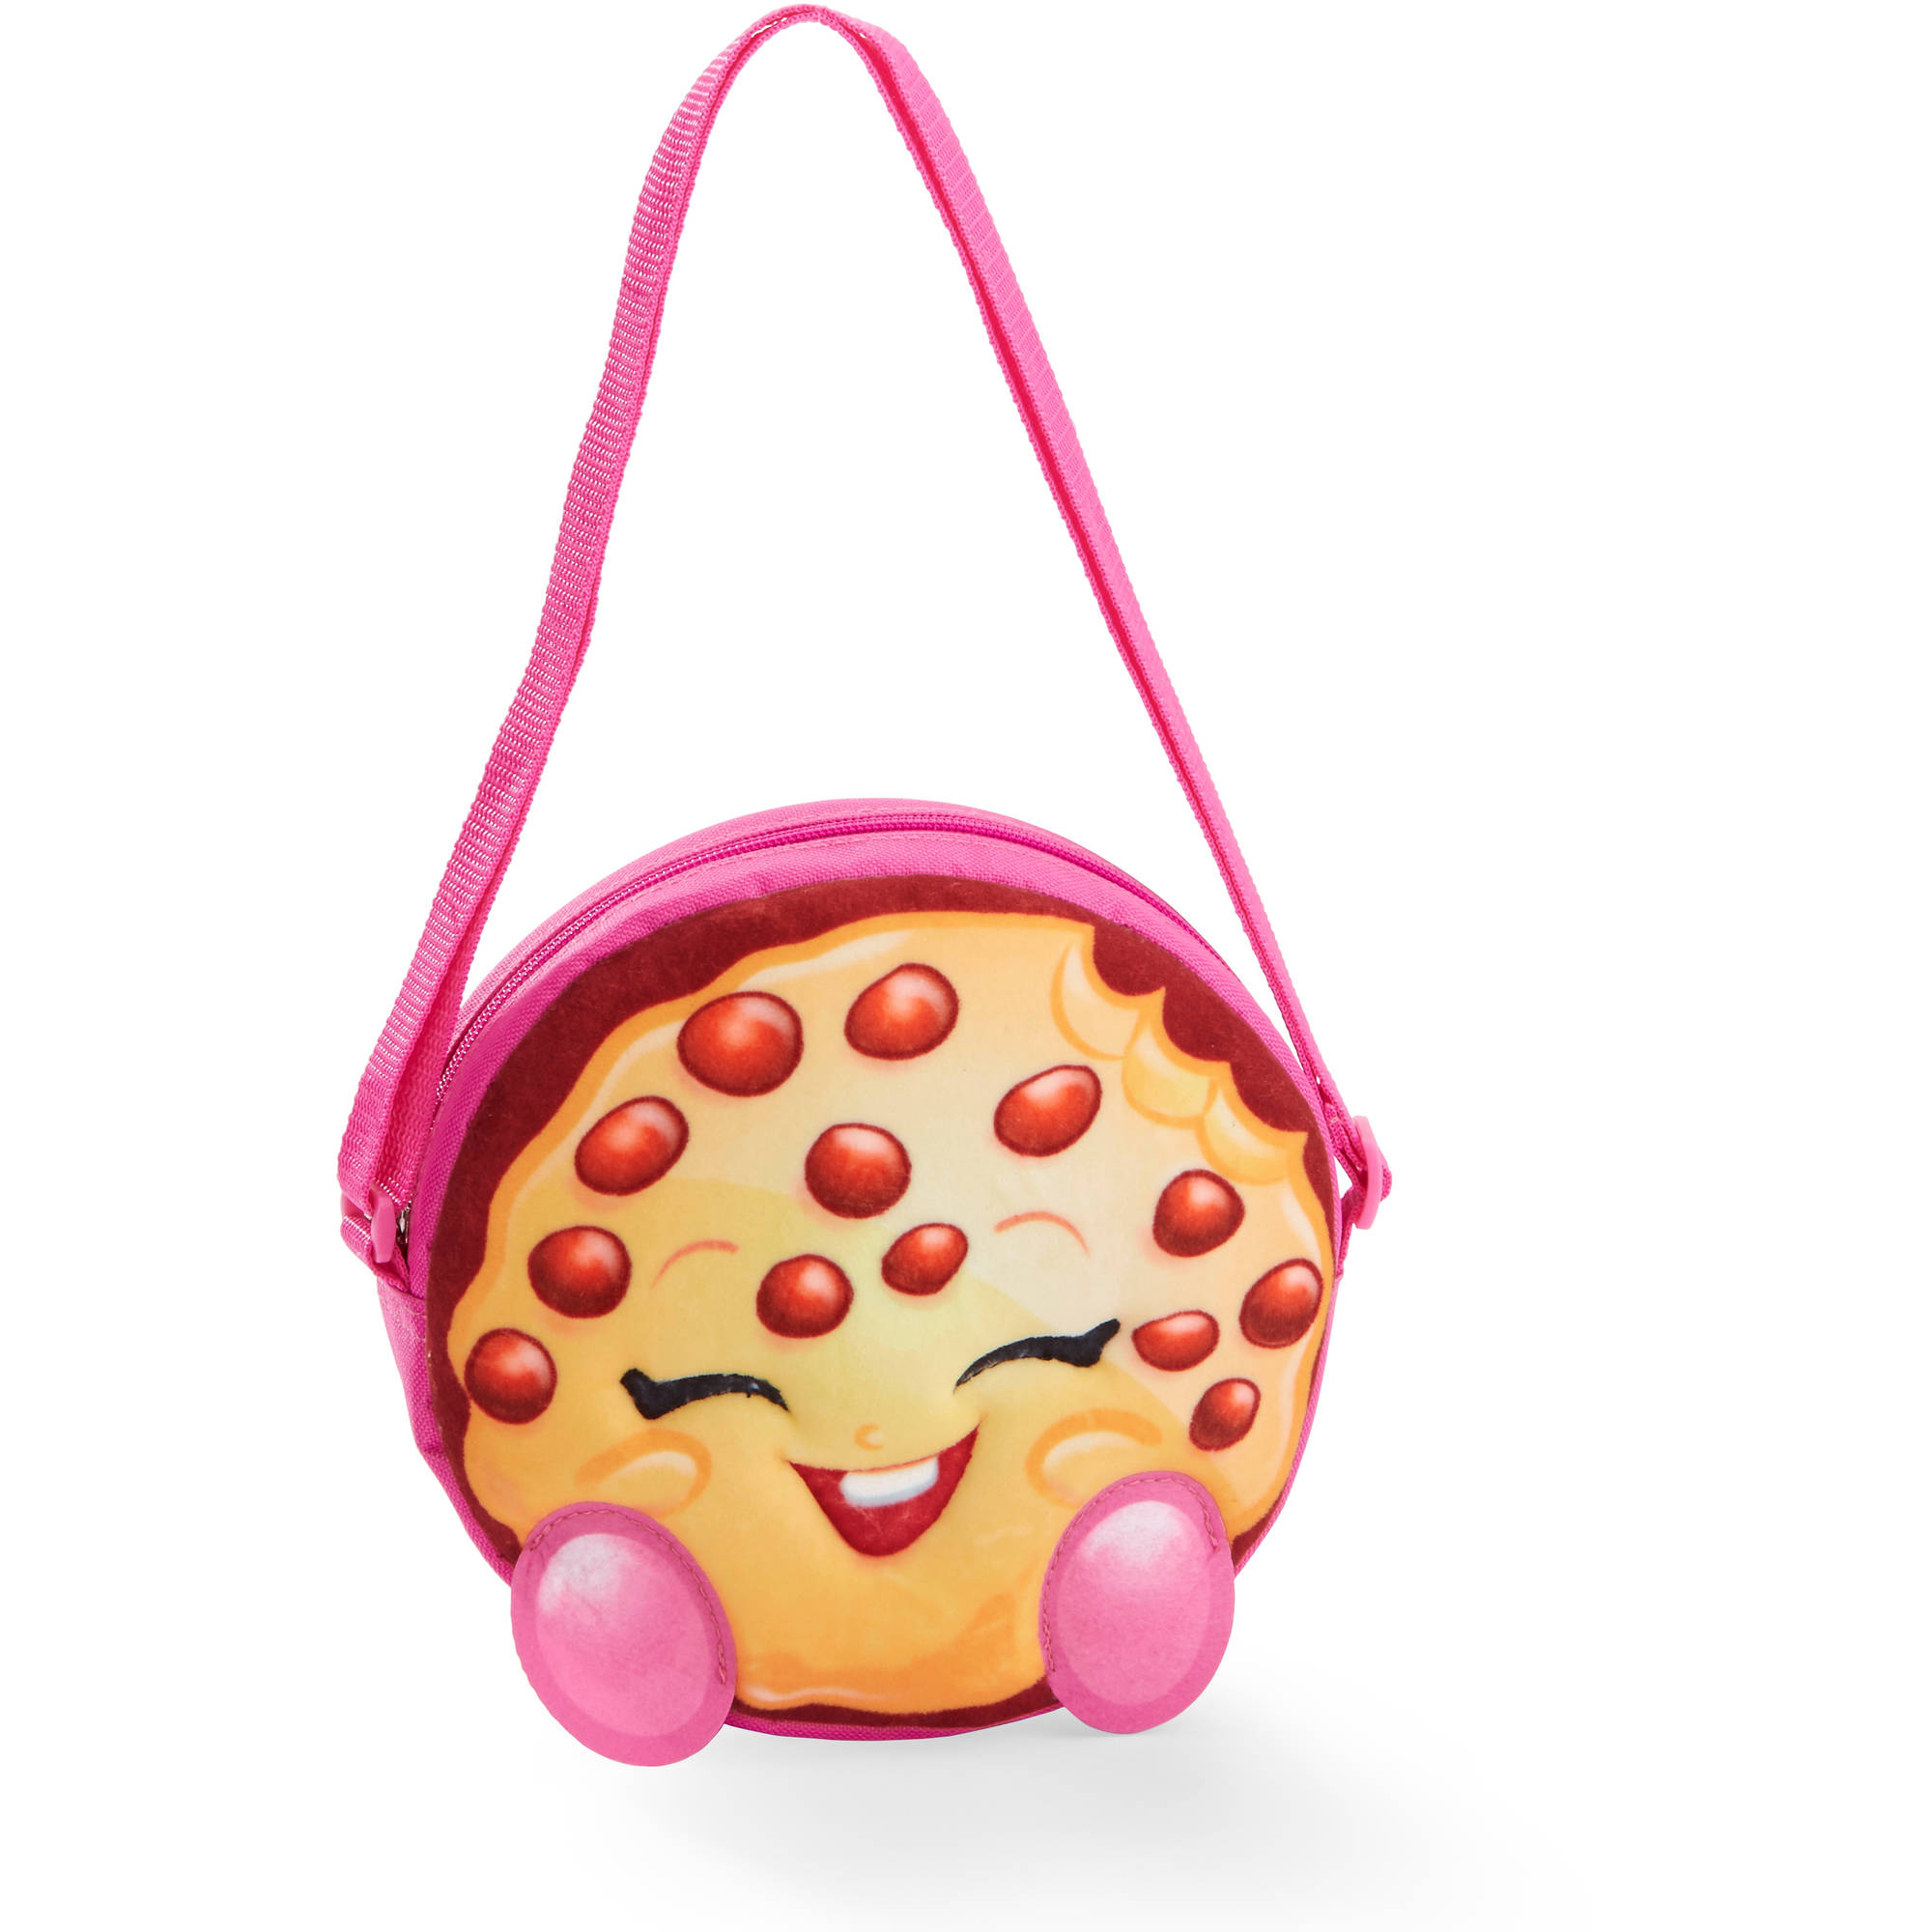 Shopkins Cookie Crossbody Bag